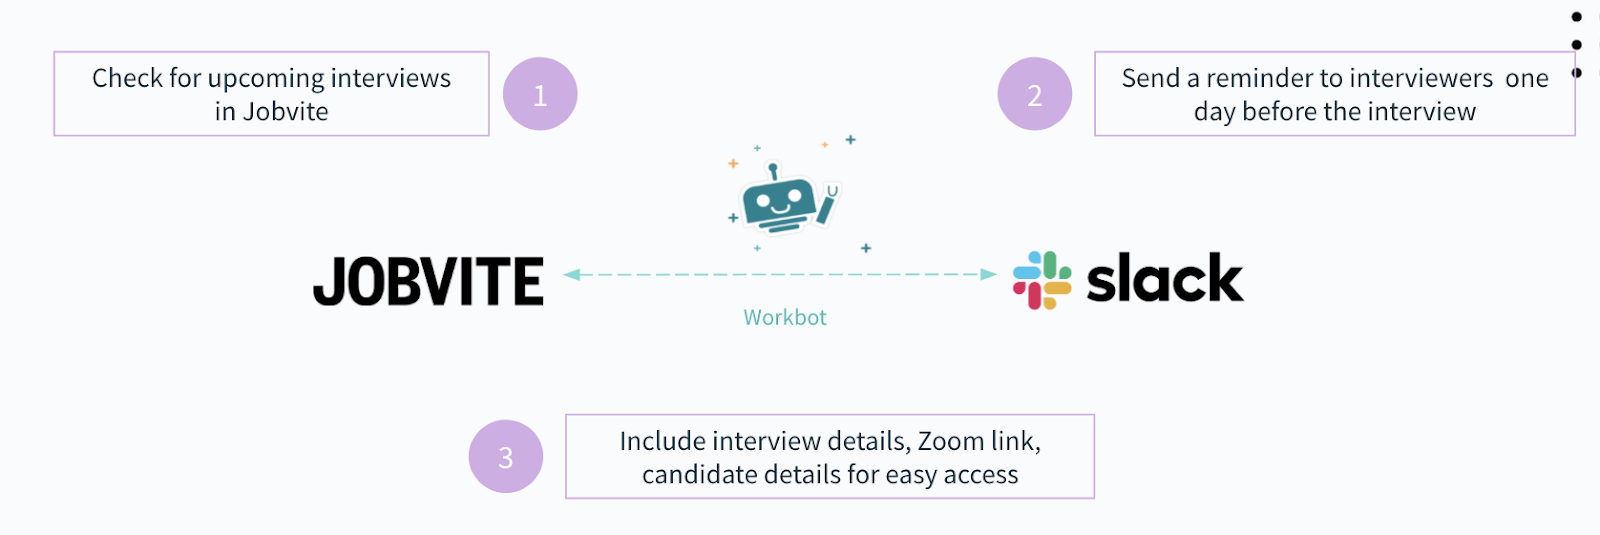 A workflow automation that reminds employees about upcoming interviews and provides them with the resources they need to prepare for any